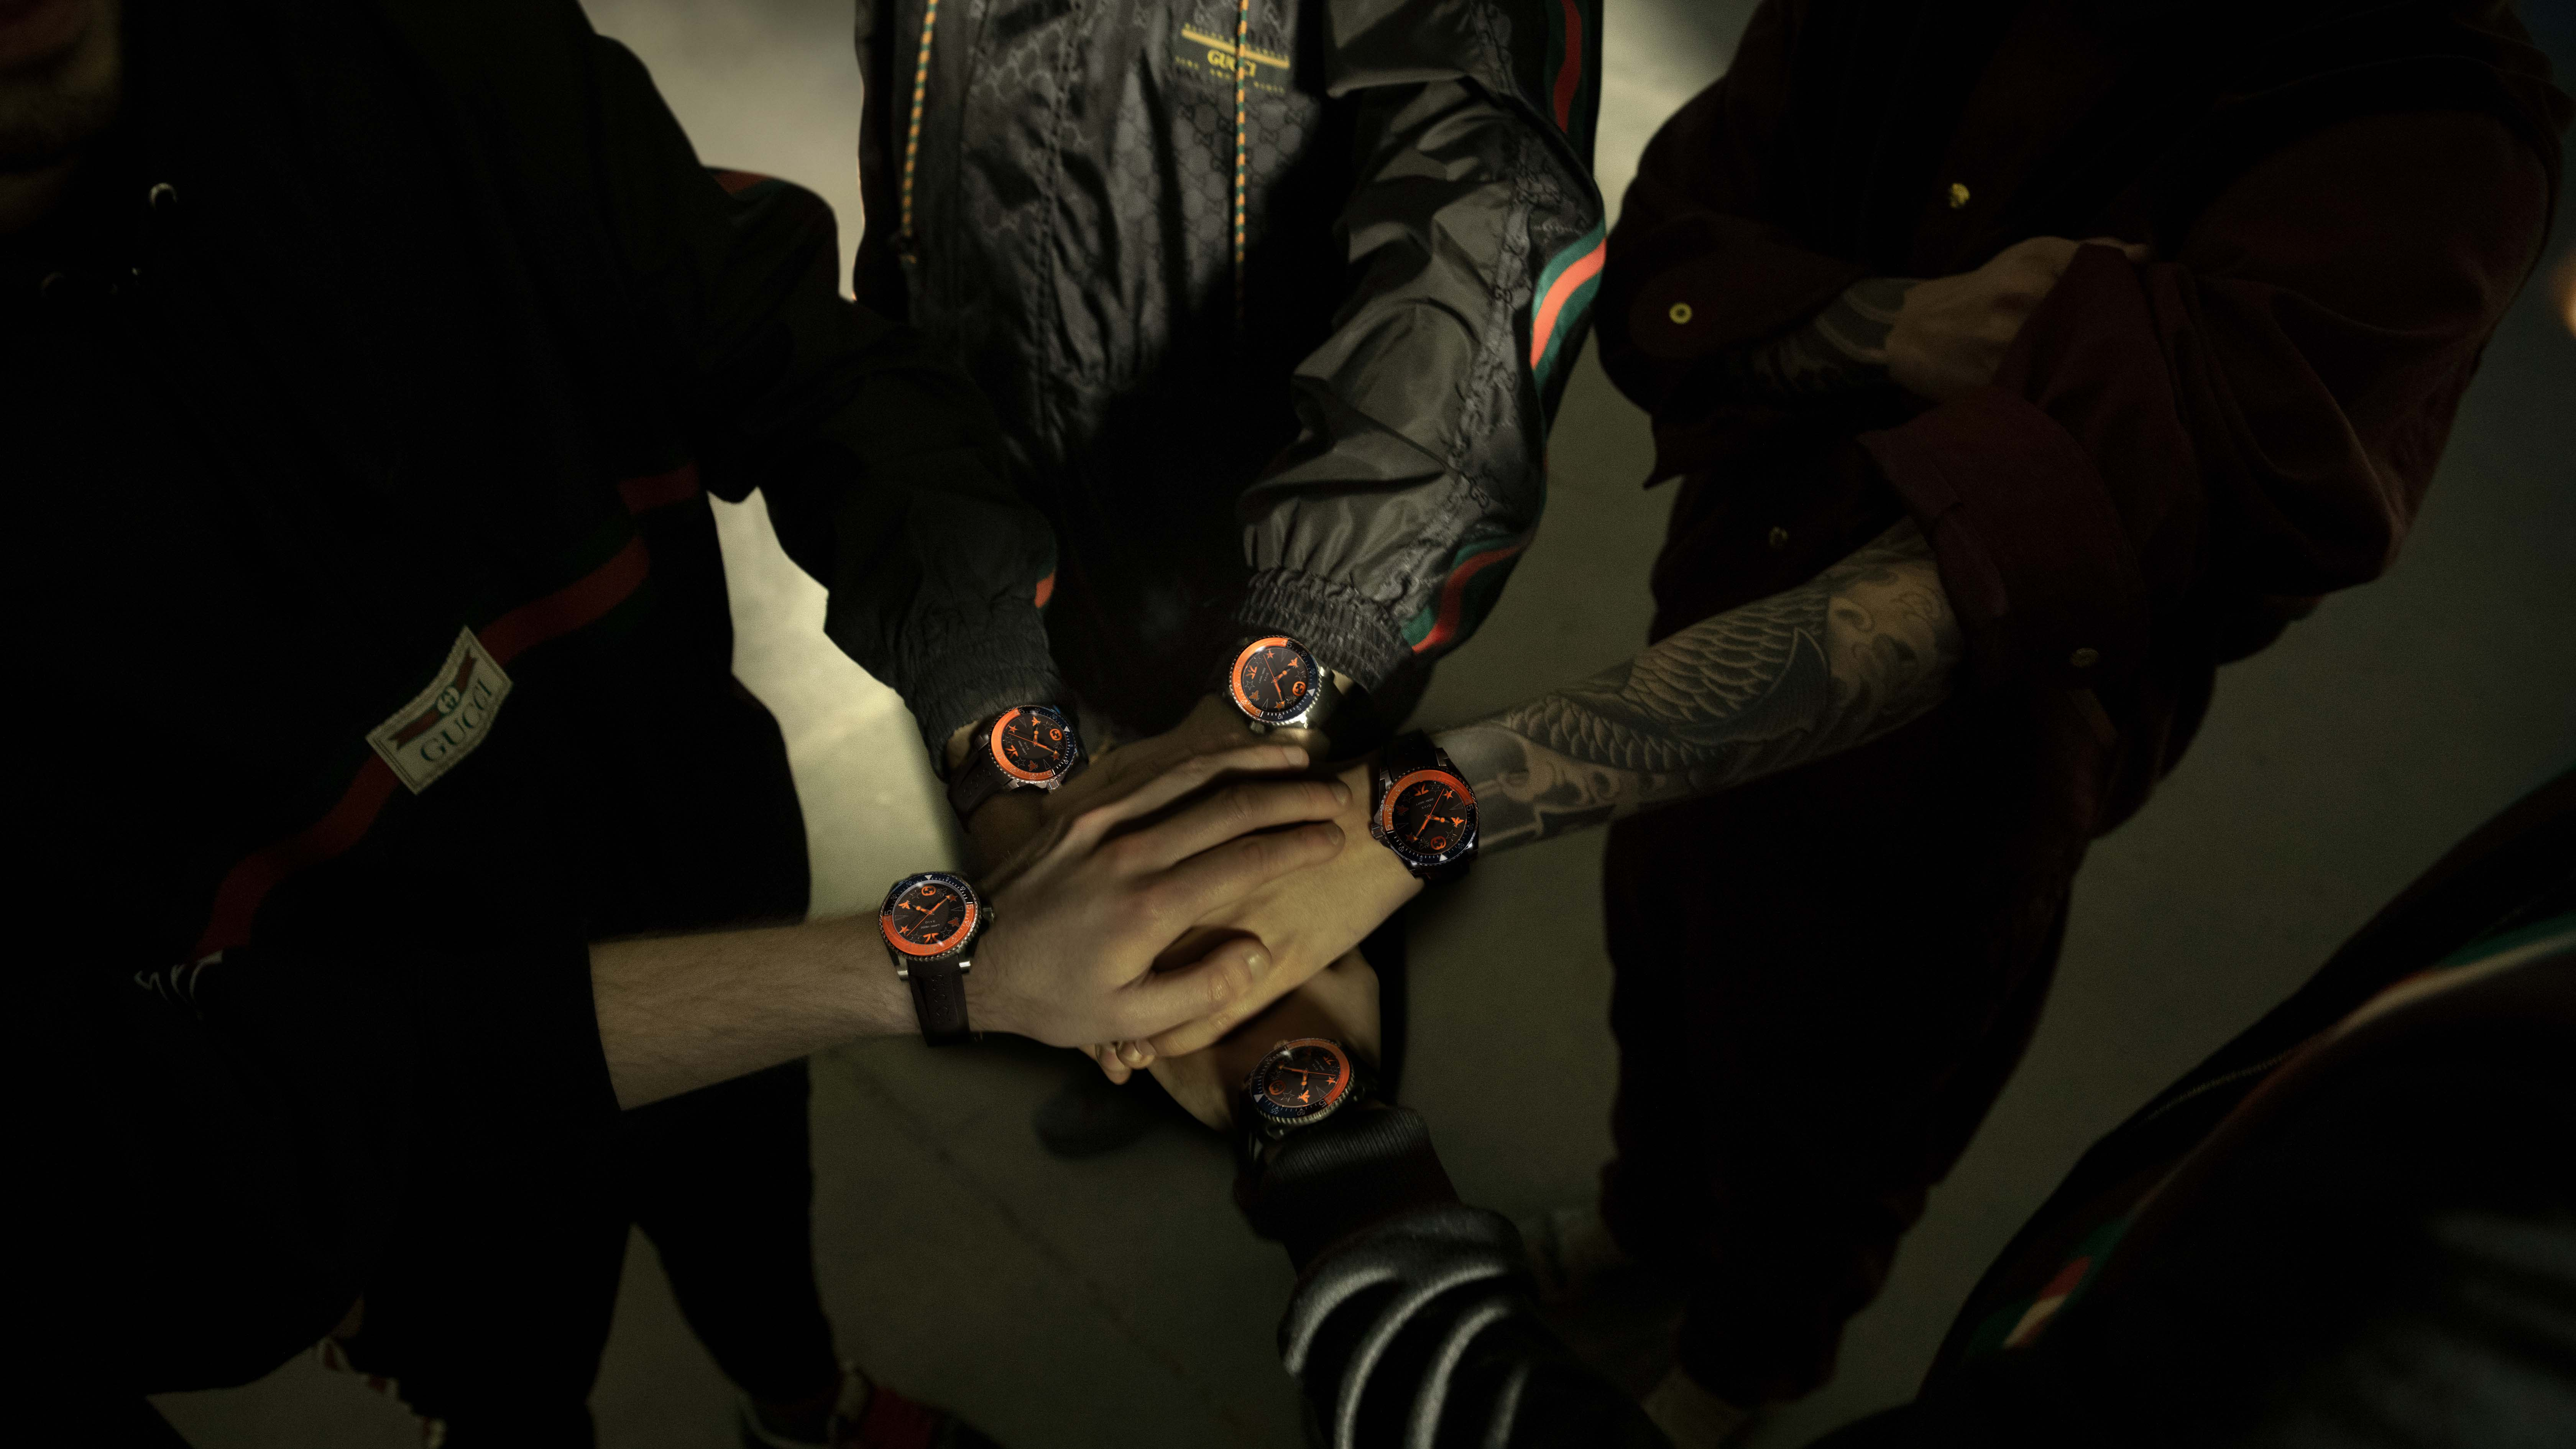 The Gucci X Fnatic Dive Watch collab as modeled by the org's League of Legends team. © Gucci/Fnatic